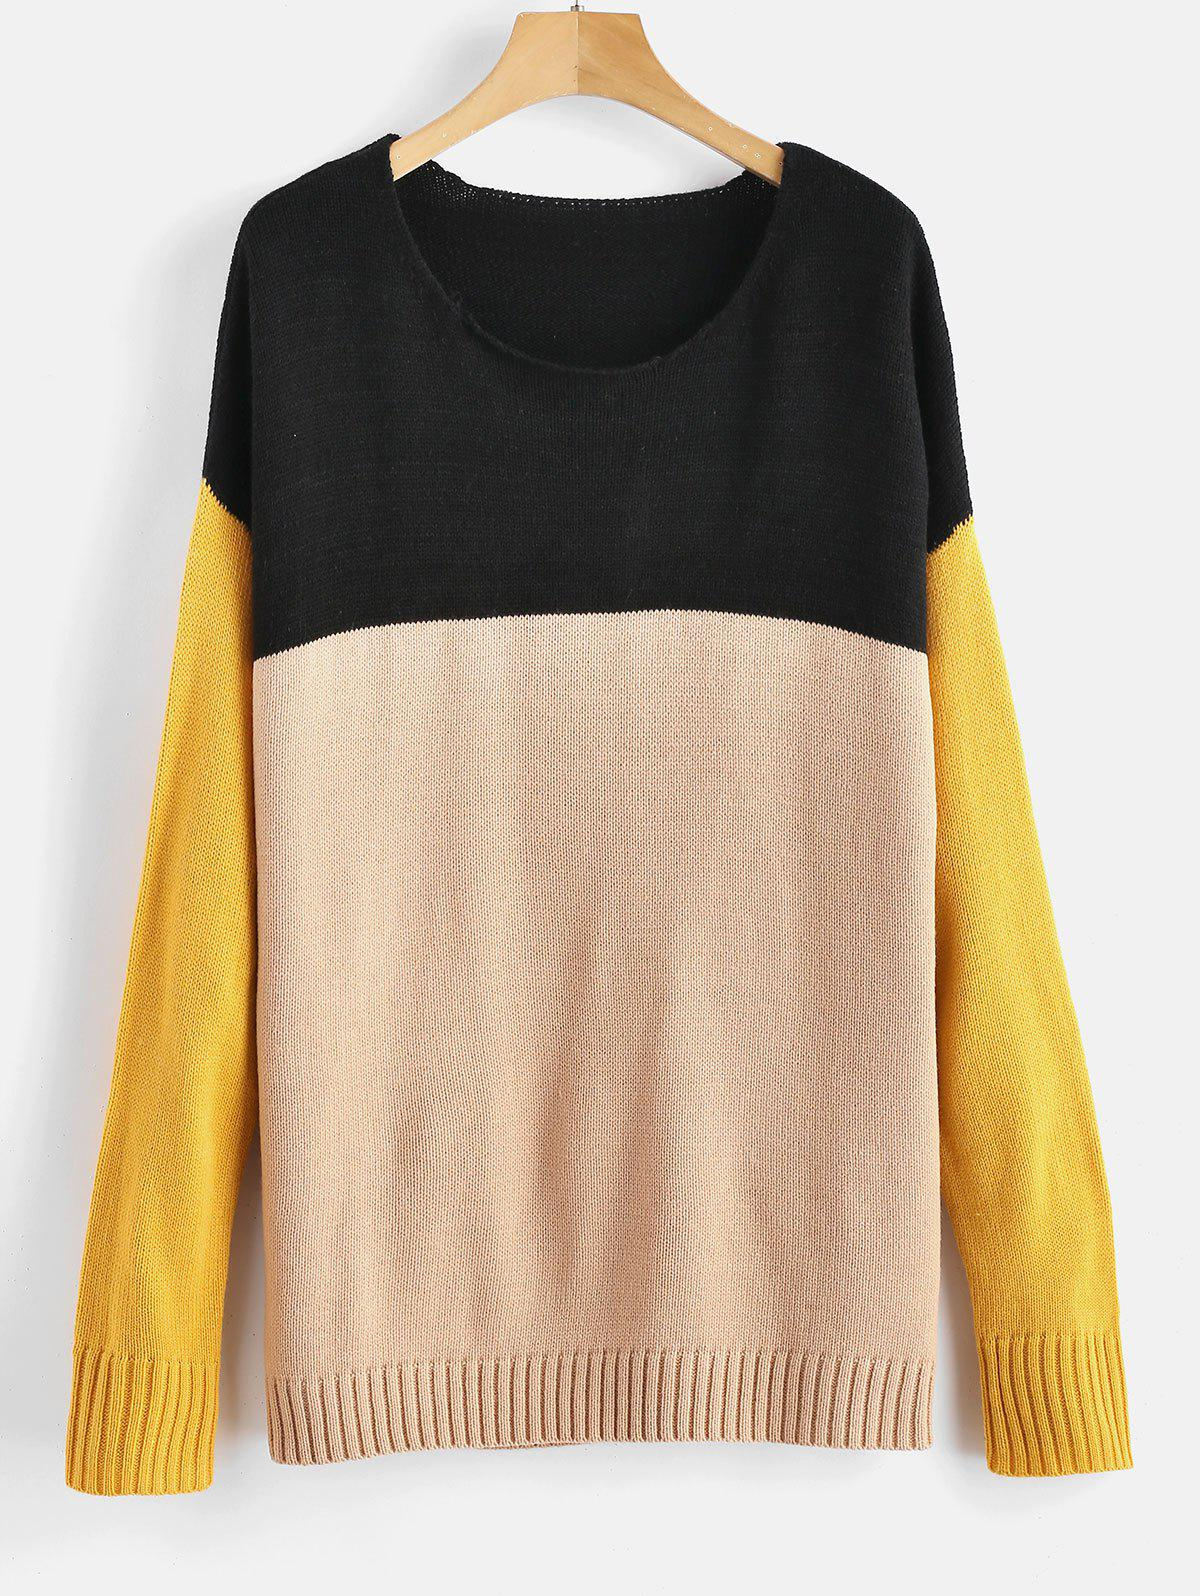 ZAFUL Color Block Drop Shoulder Sweater